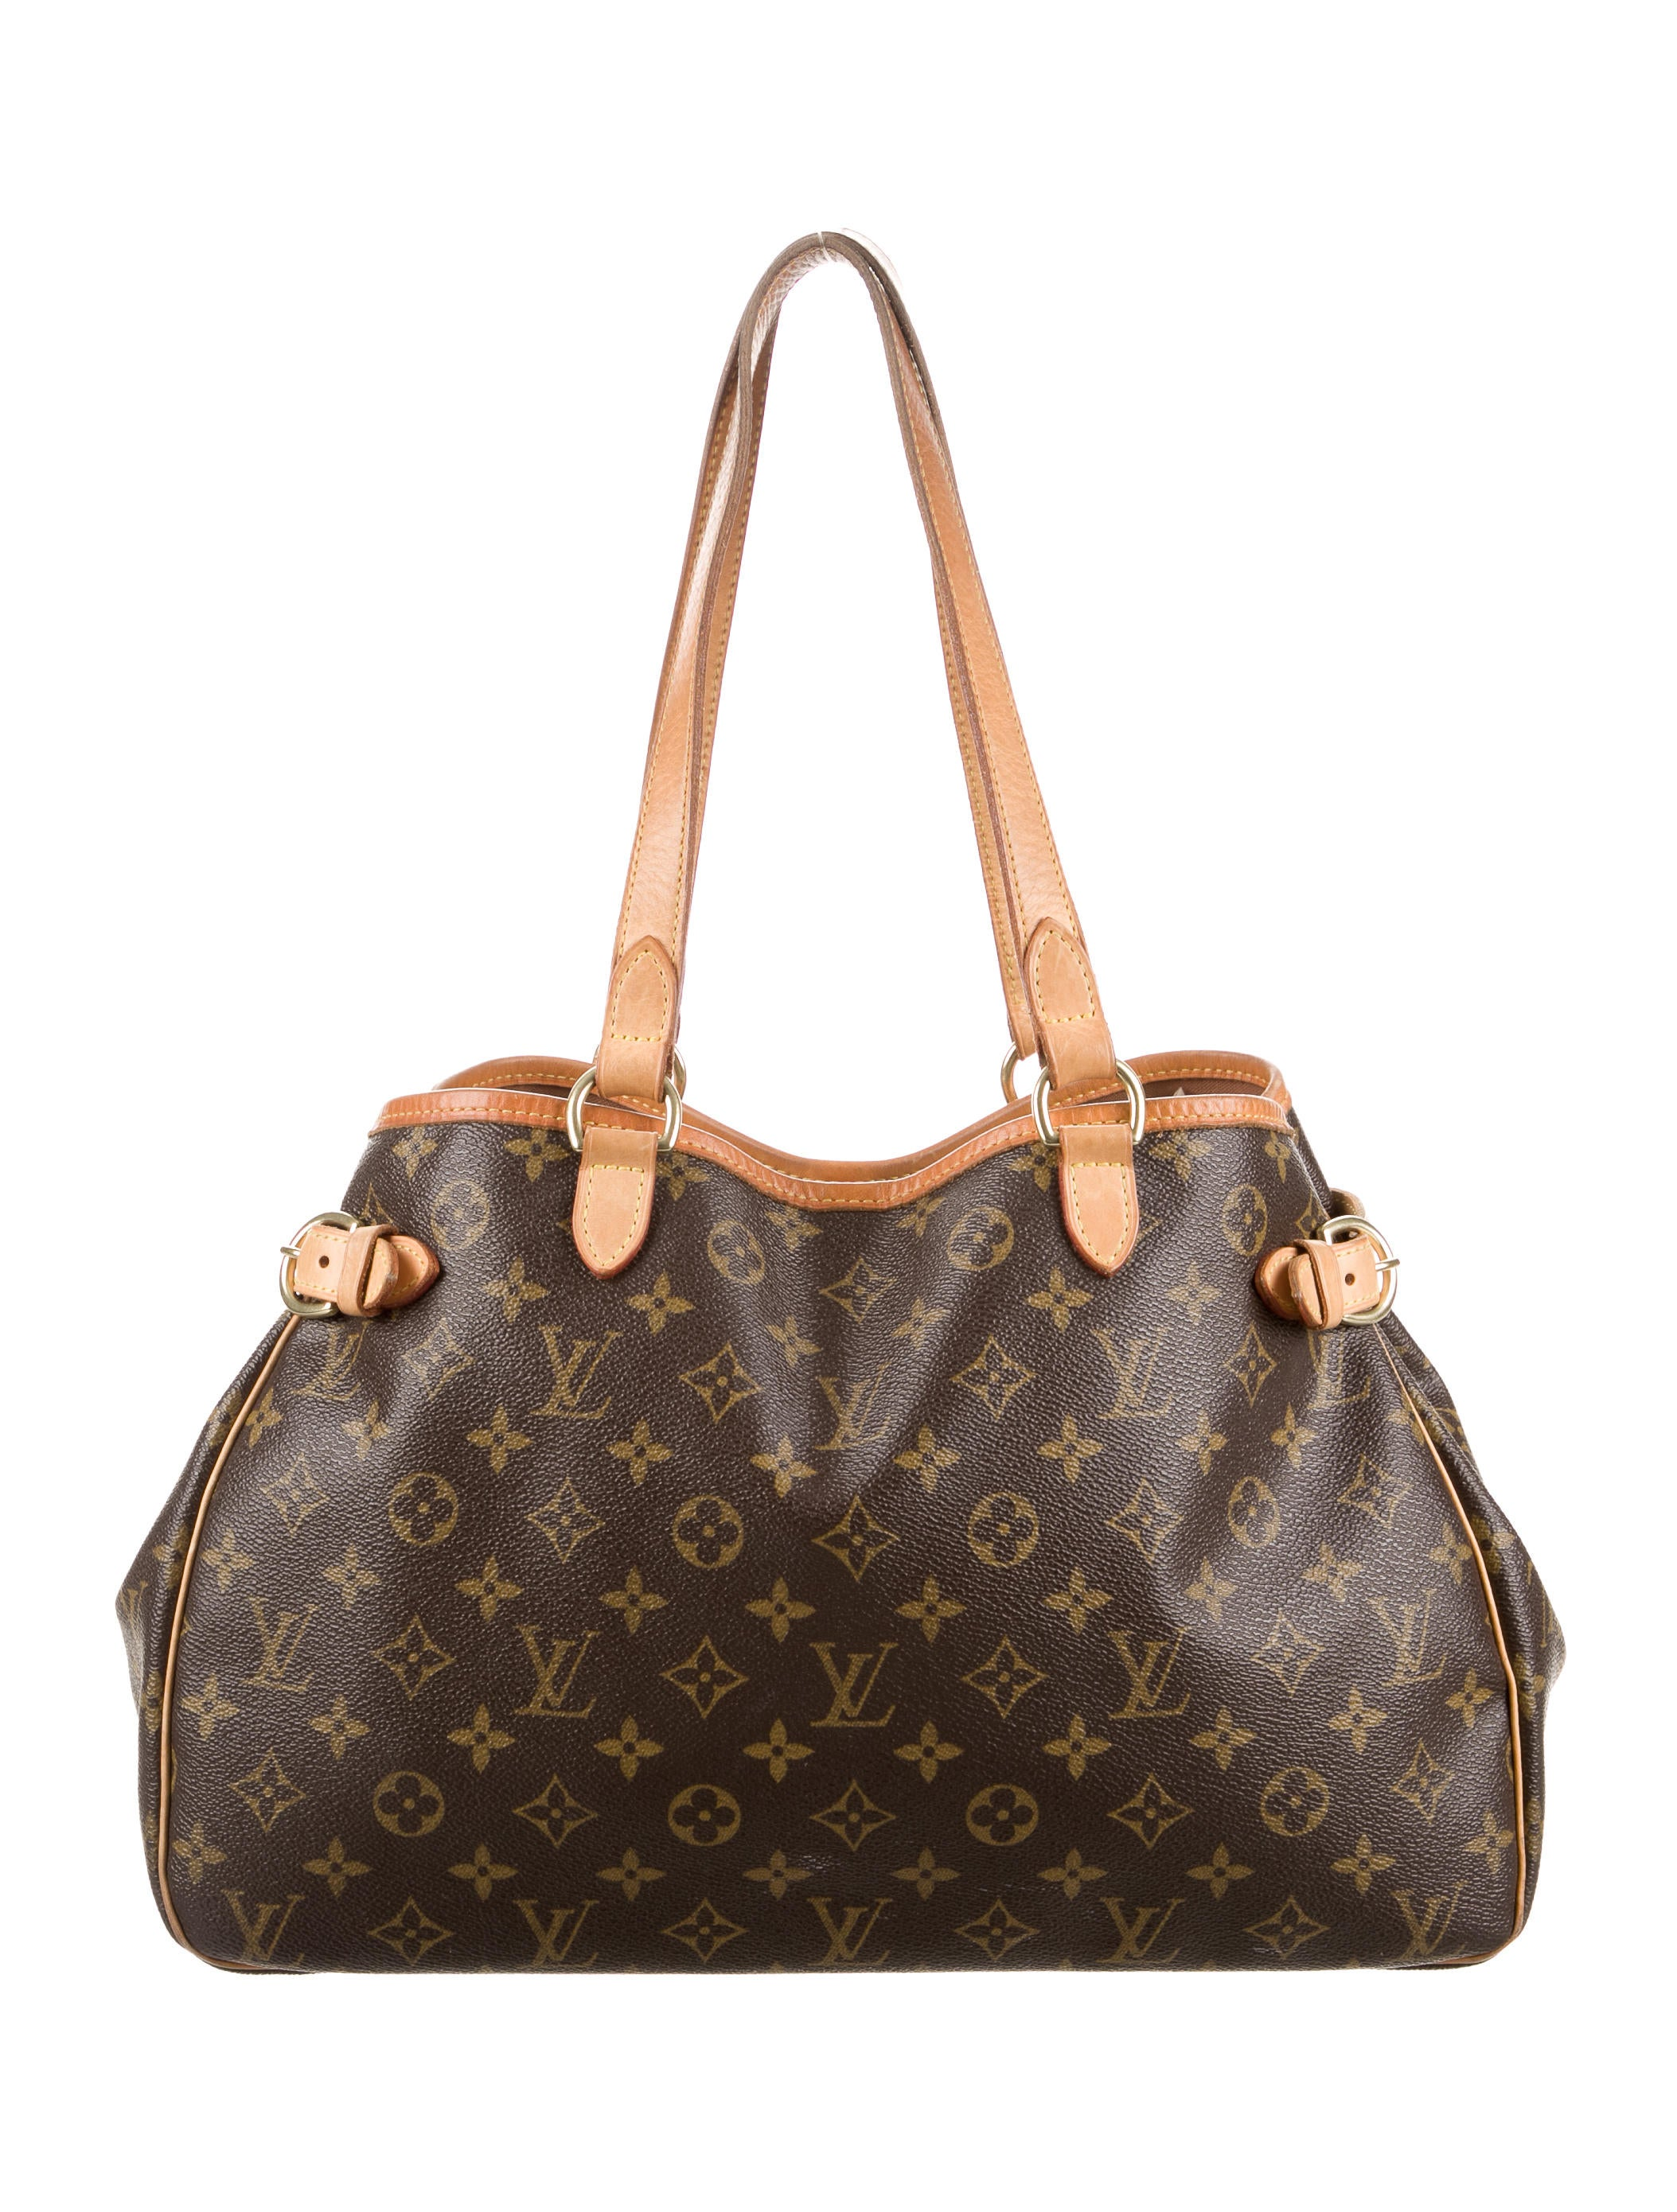 194af5ecafd2 Louis Vuitton Monogram Batignolles Horizontal Bag - Handbags ...